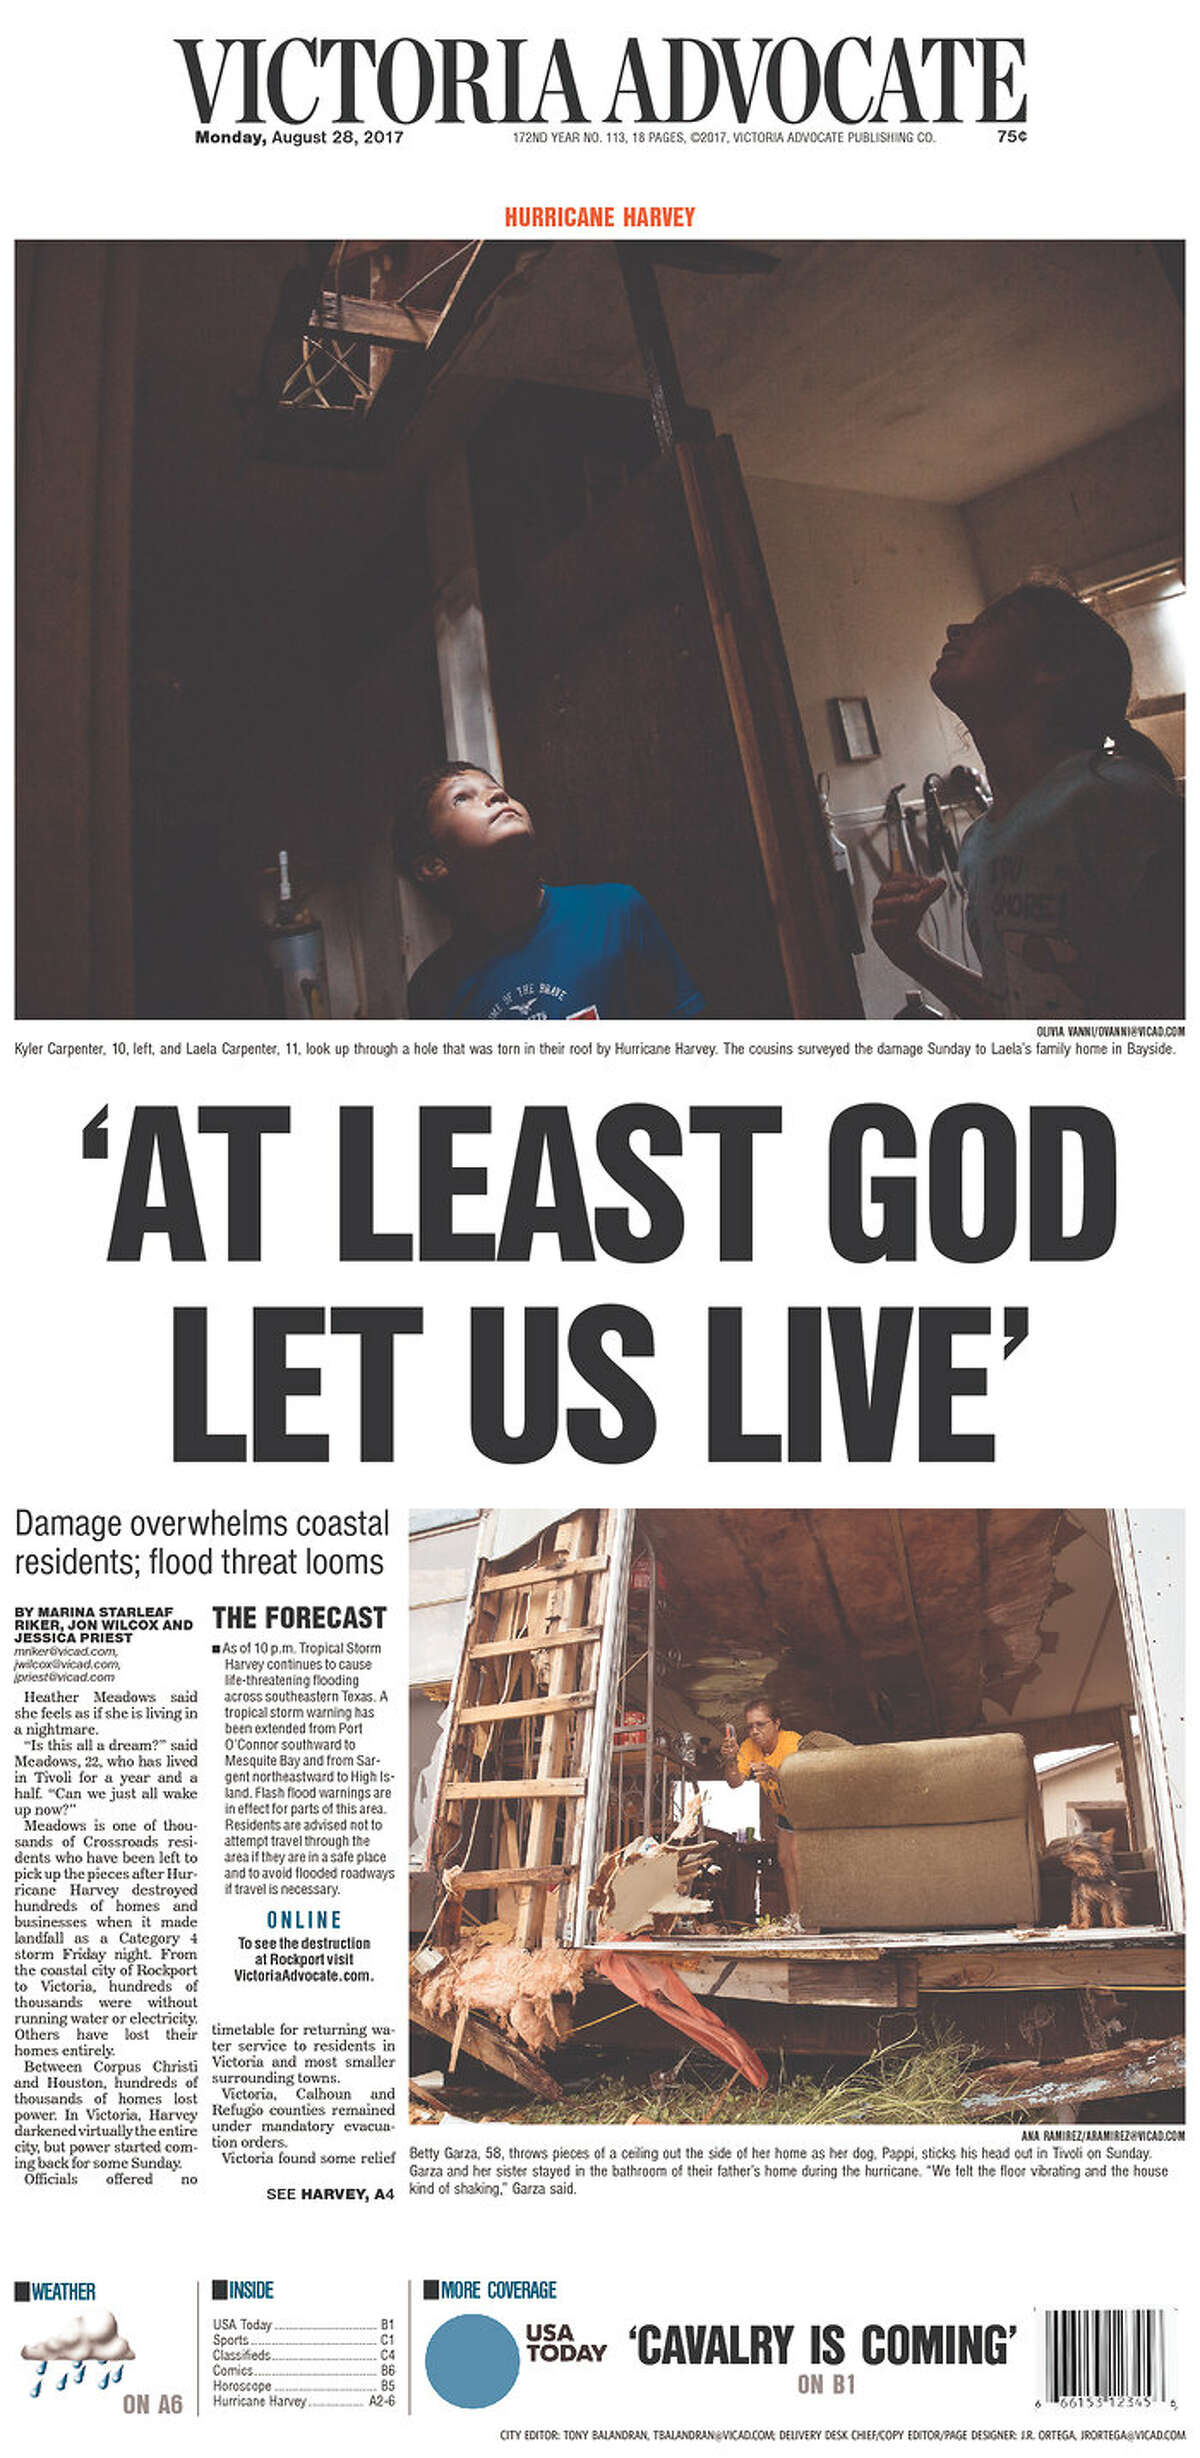 Victoria Advocate: Victoria, Texas Front pages from Texas and beyond for Monday, Aug. 28, 2017, show how newspapers covered the catastrophic floods in Houston due to Tropical Storm Harvey.